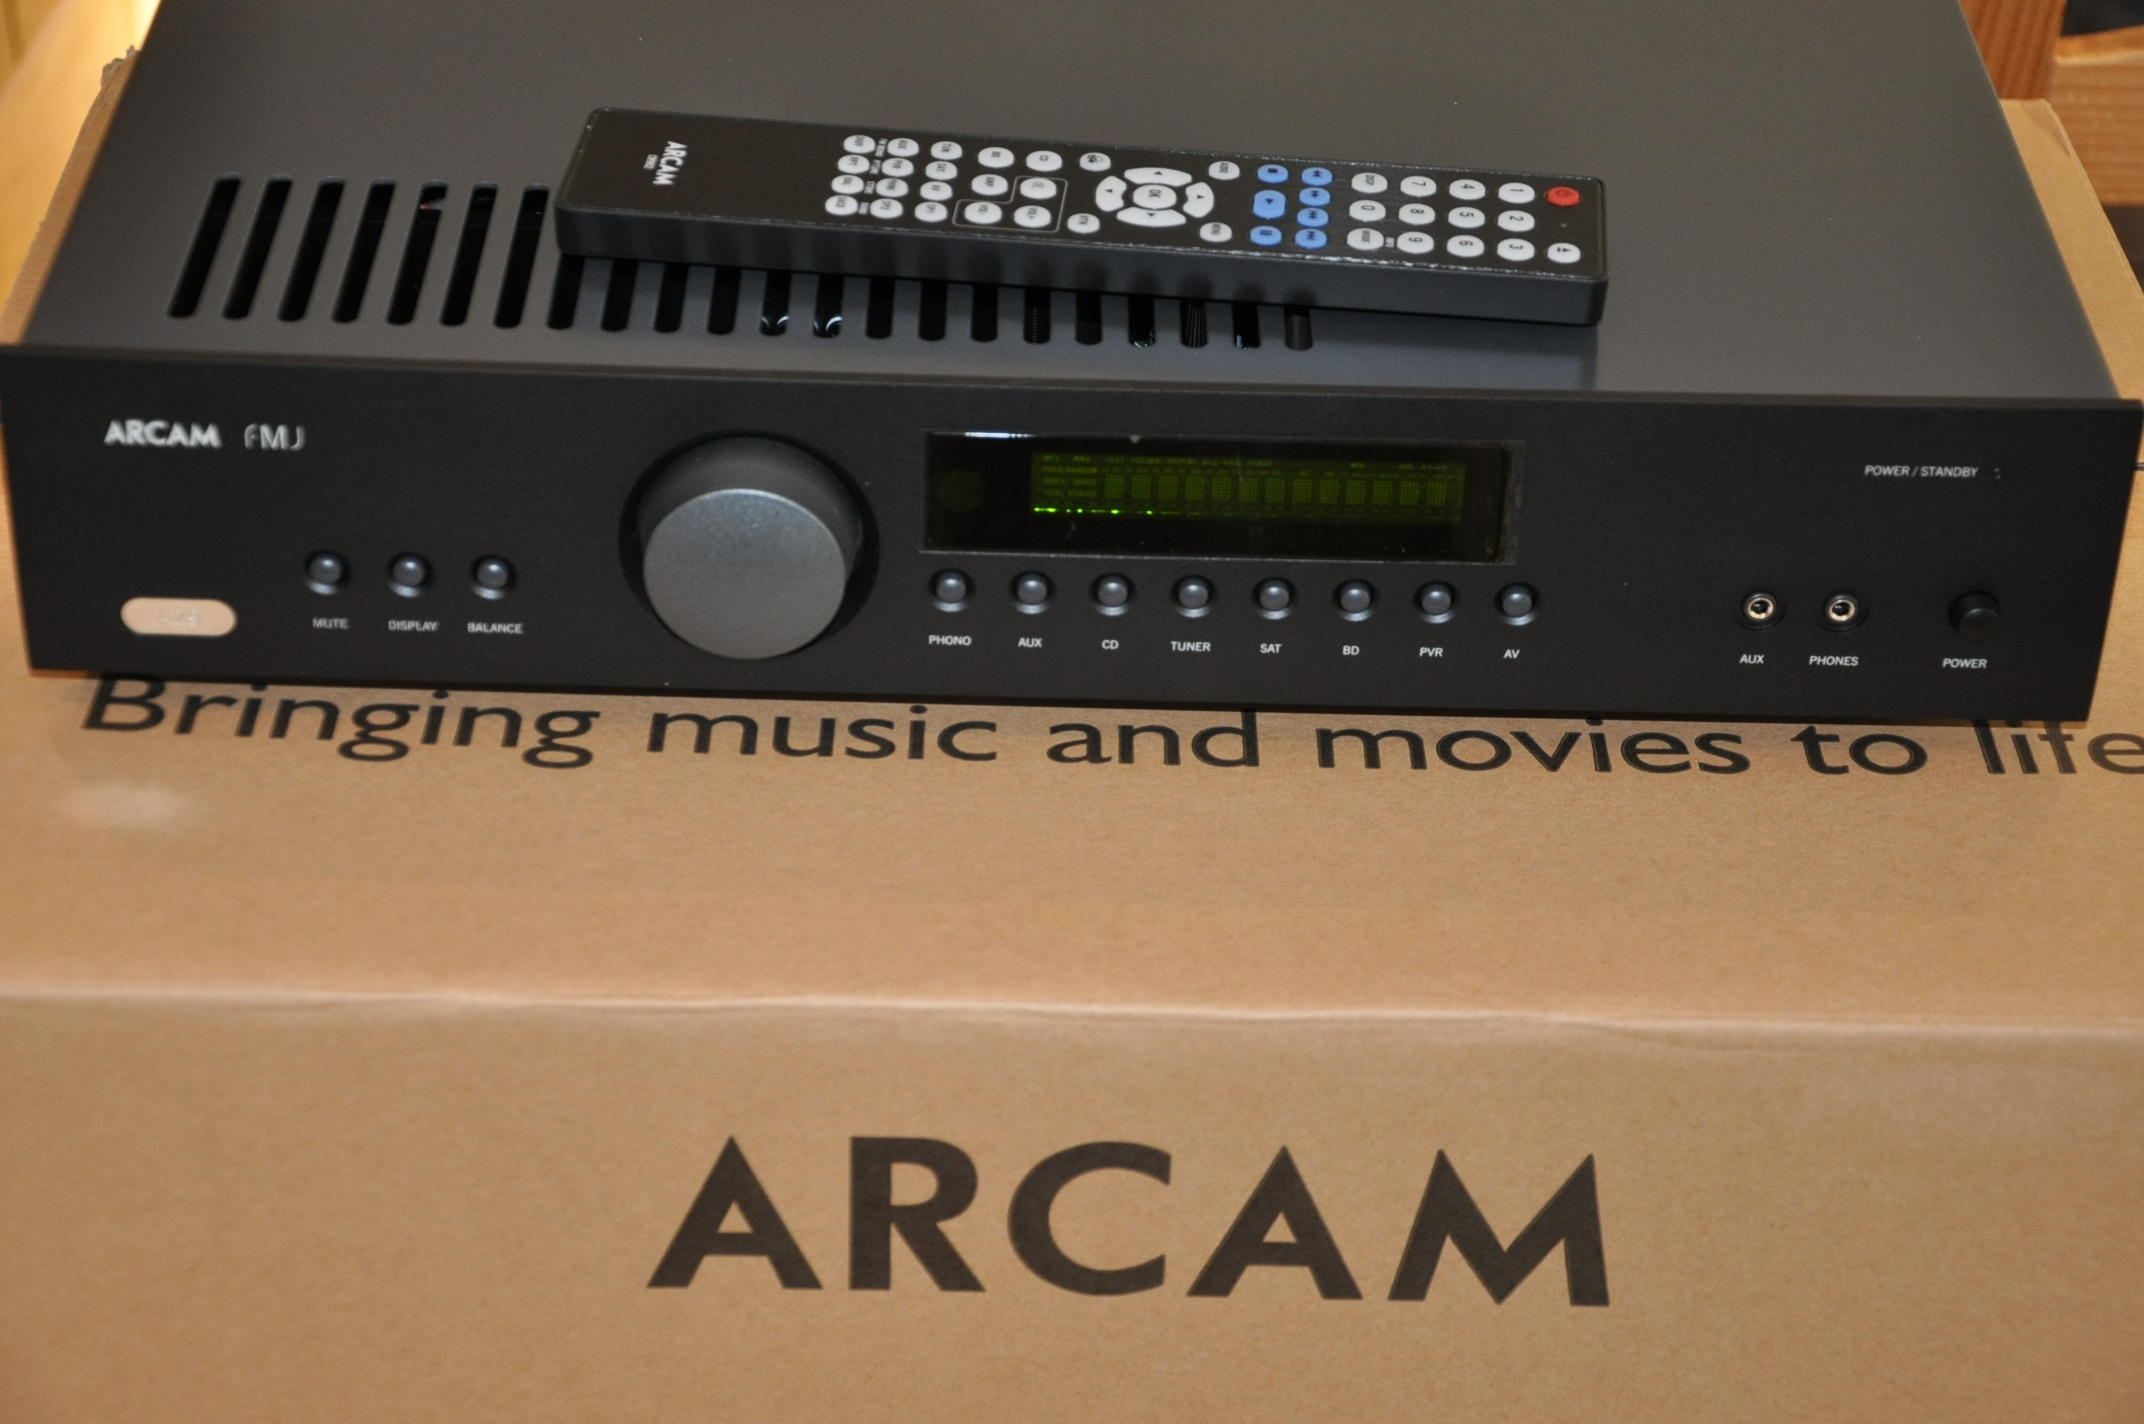 Arcam FMJ A29 - Review - HiFi and Music Source